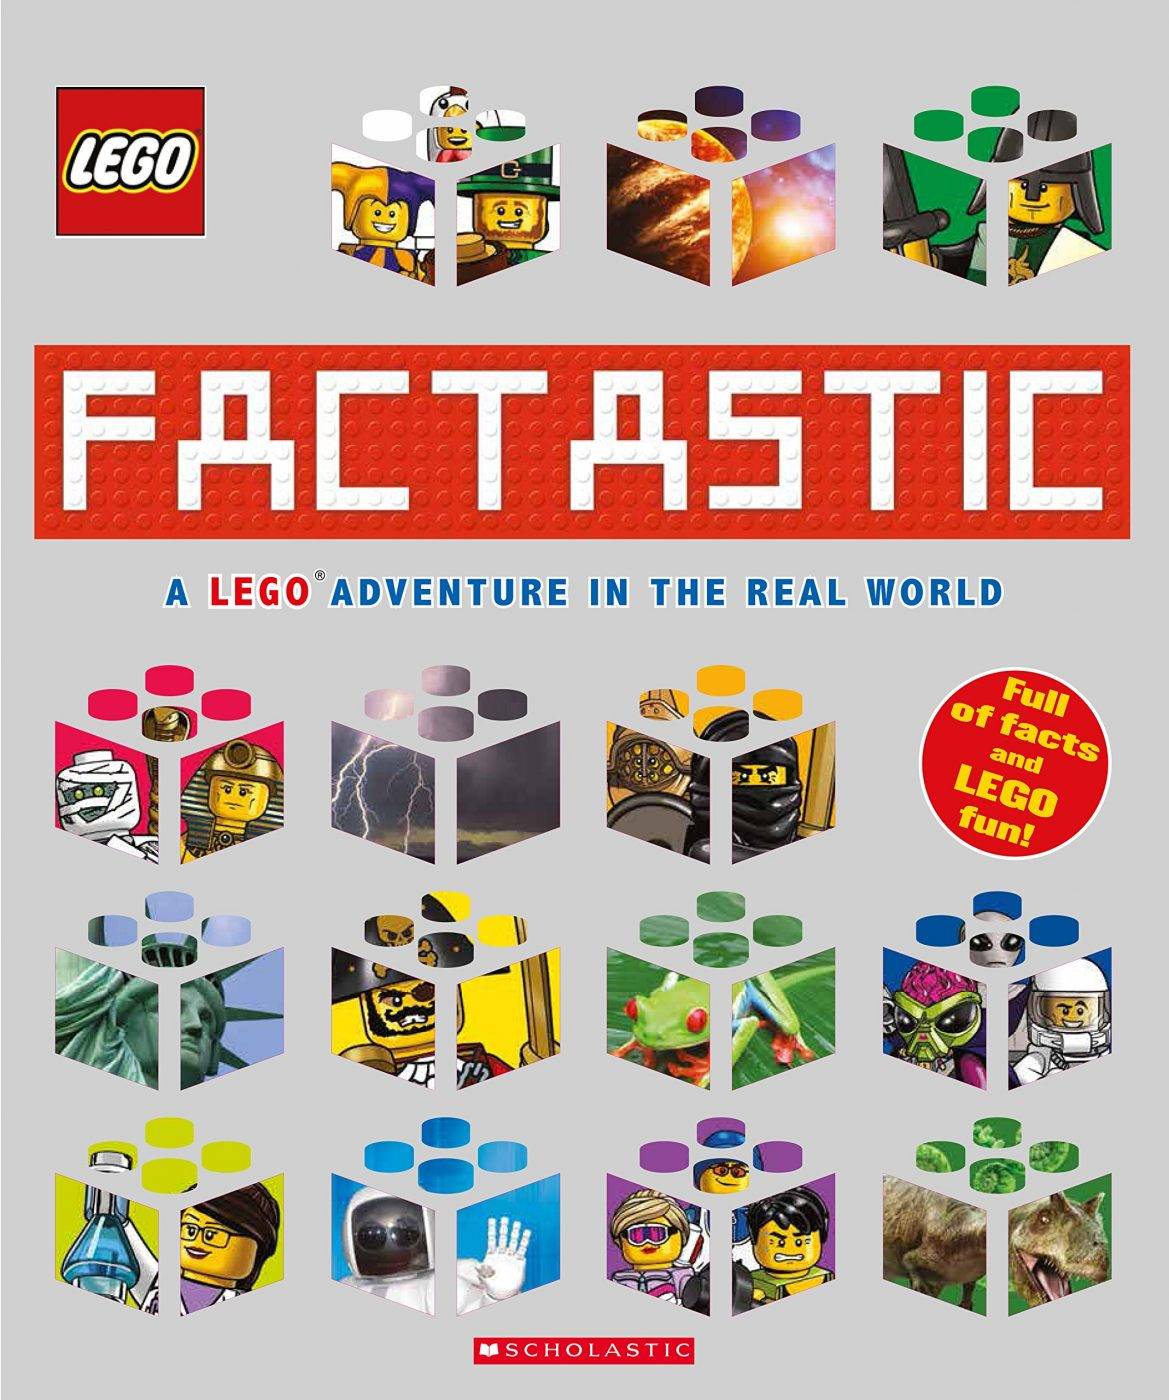 Factastic A LEGO Adventure in the Real World